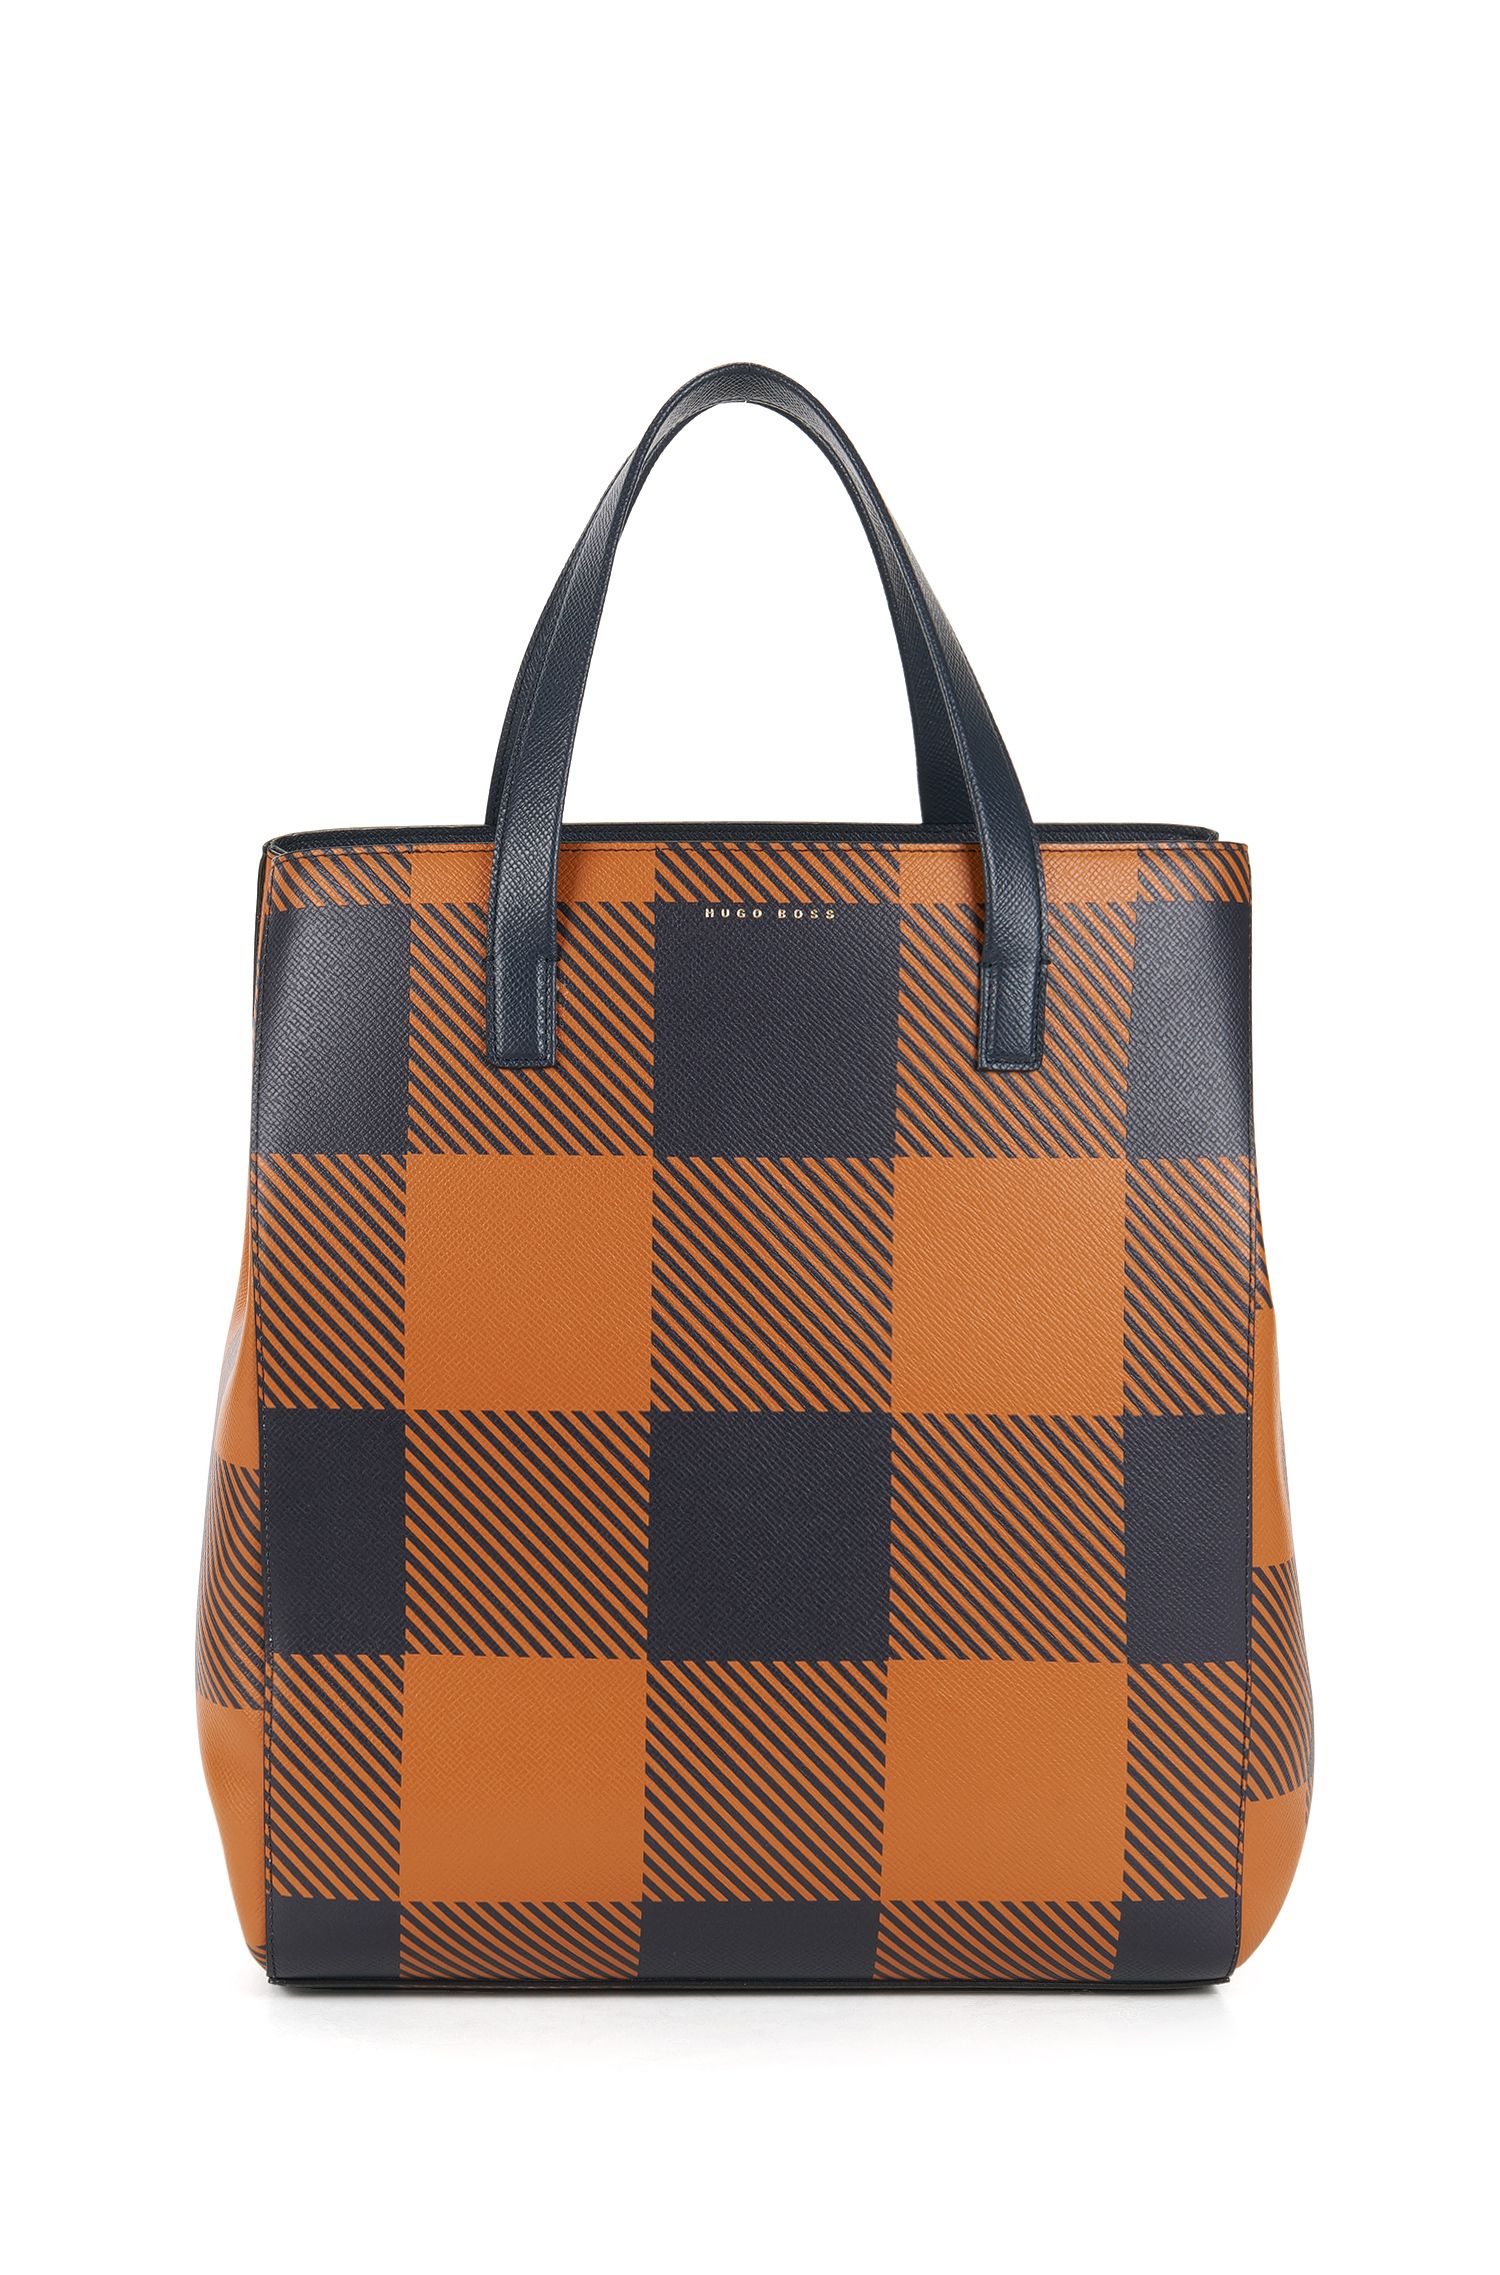 Checked Leather Tote | Soft Tote V, Brown